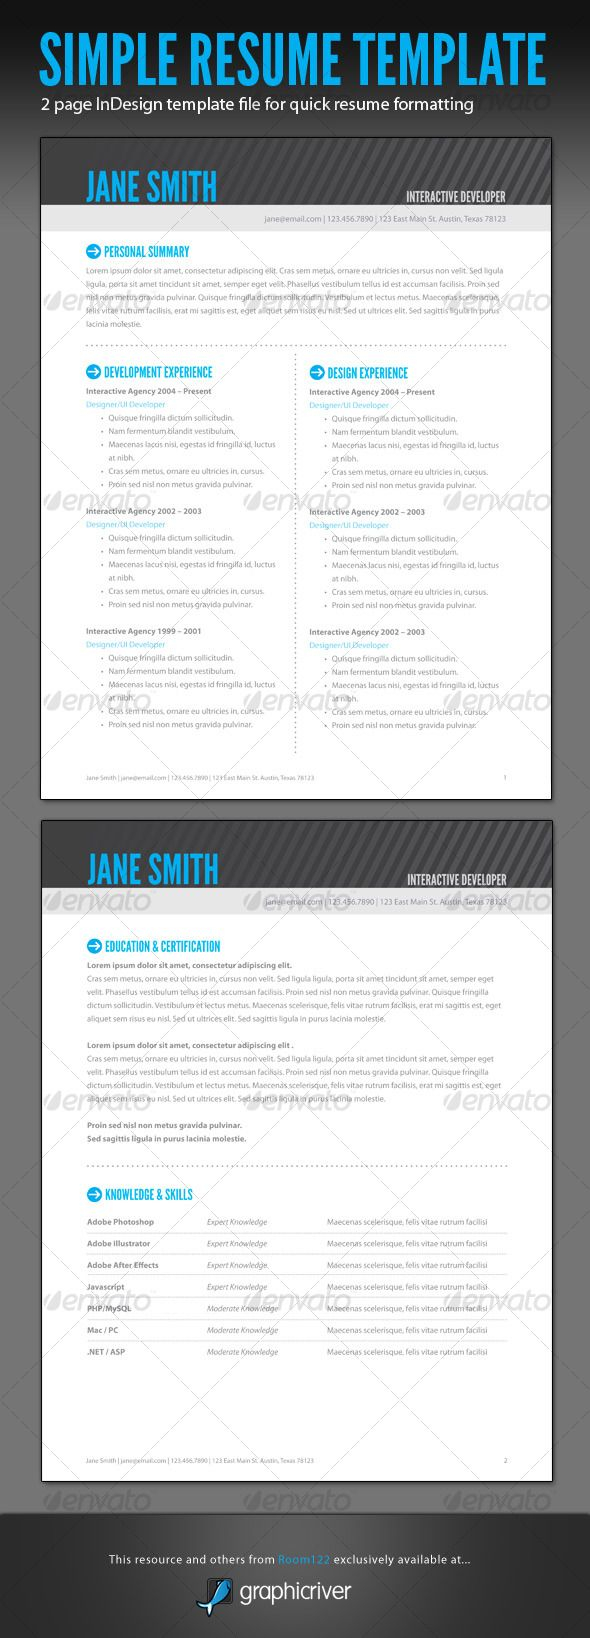 Indesign Letter Template - Adobe Indesign Resume Template Resume Template Indesign All Best Cv